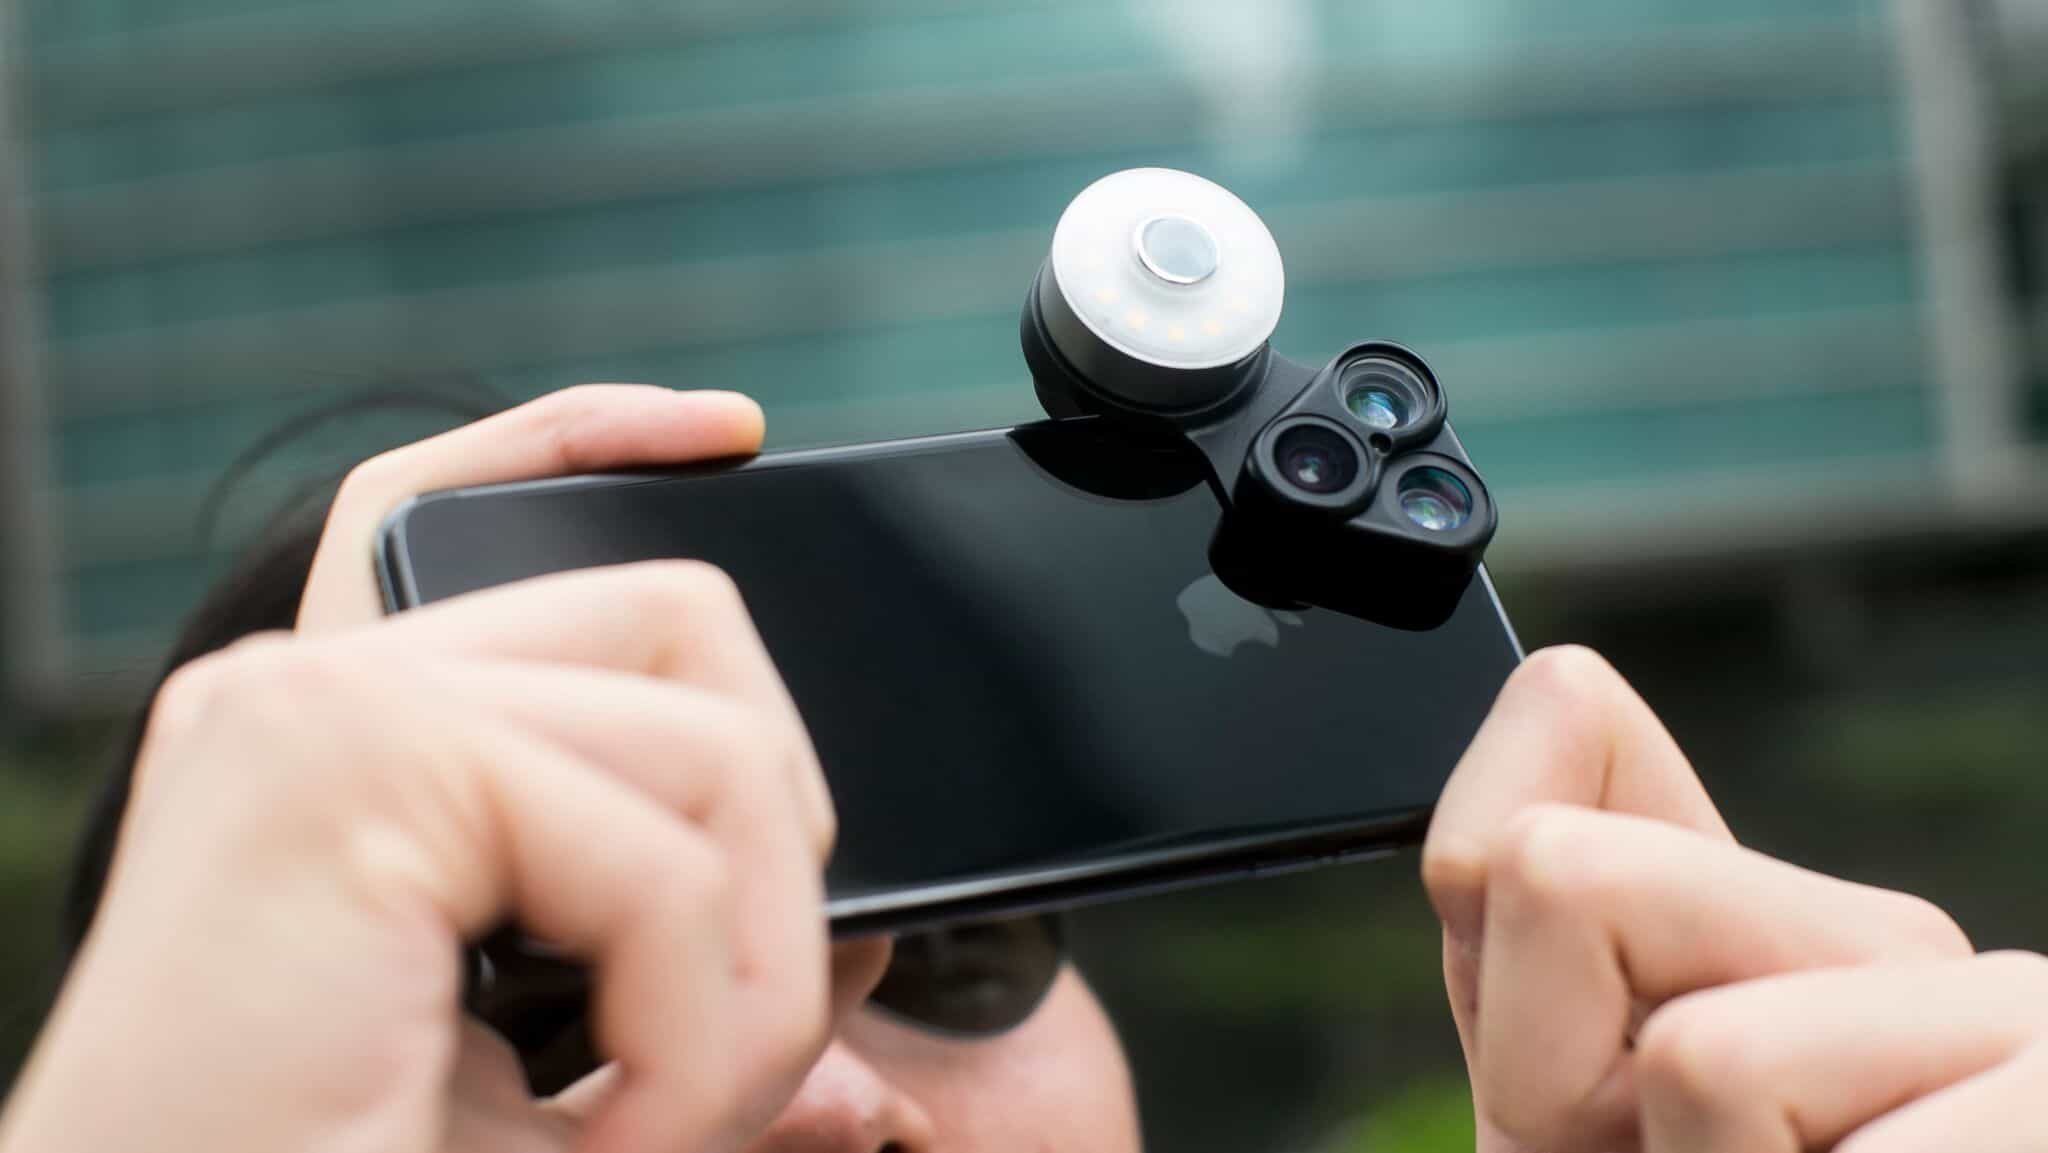 iphone camera lens attachment flashy 3 in 1 lens lights up your iphone photos cult of mac 2188